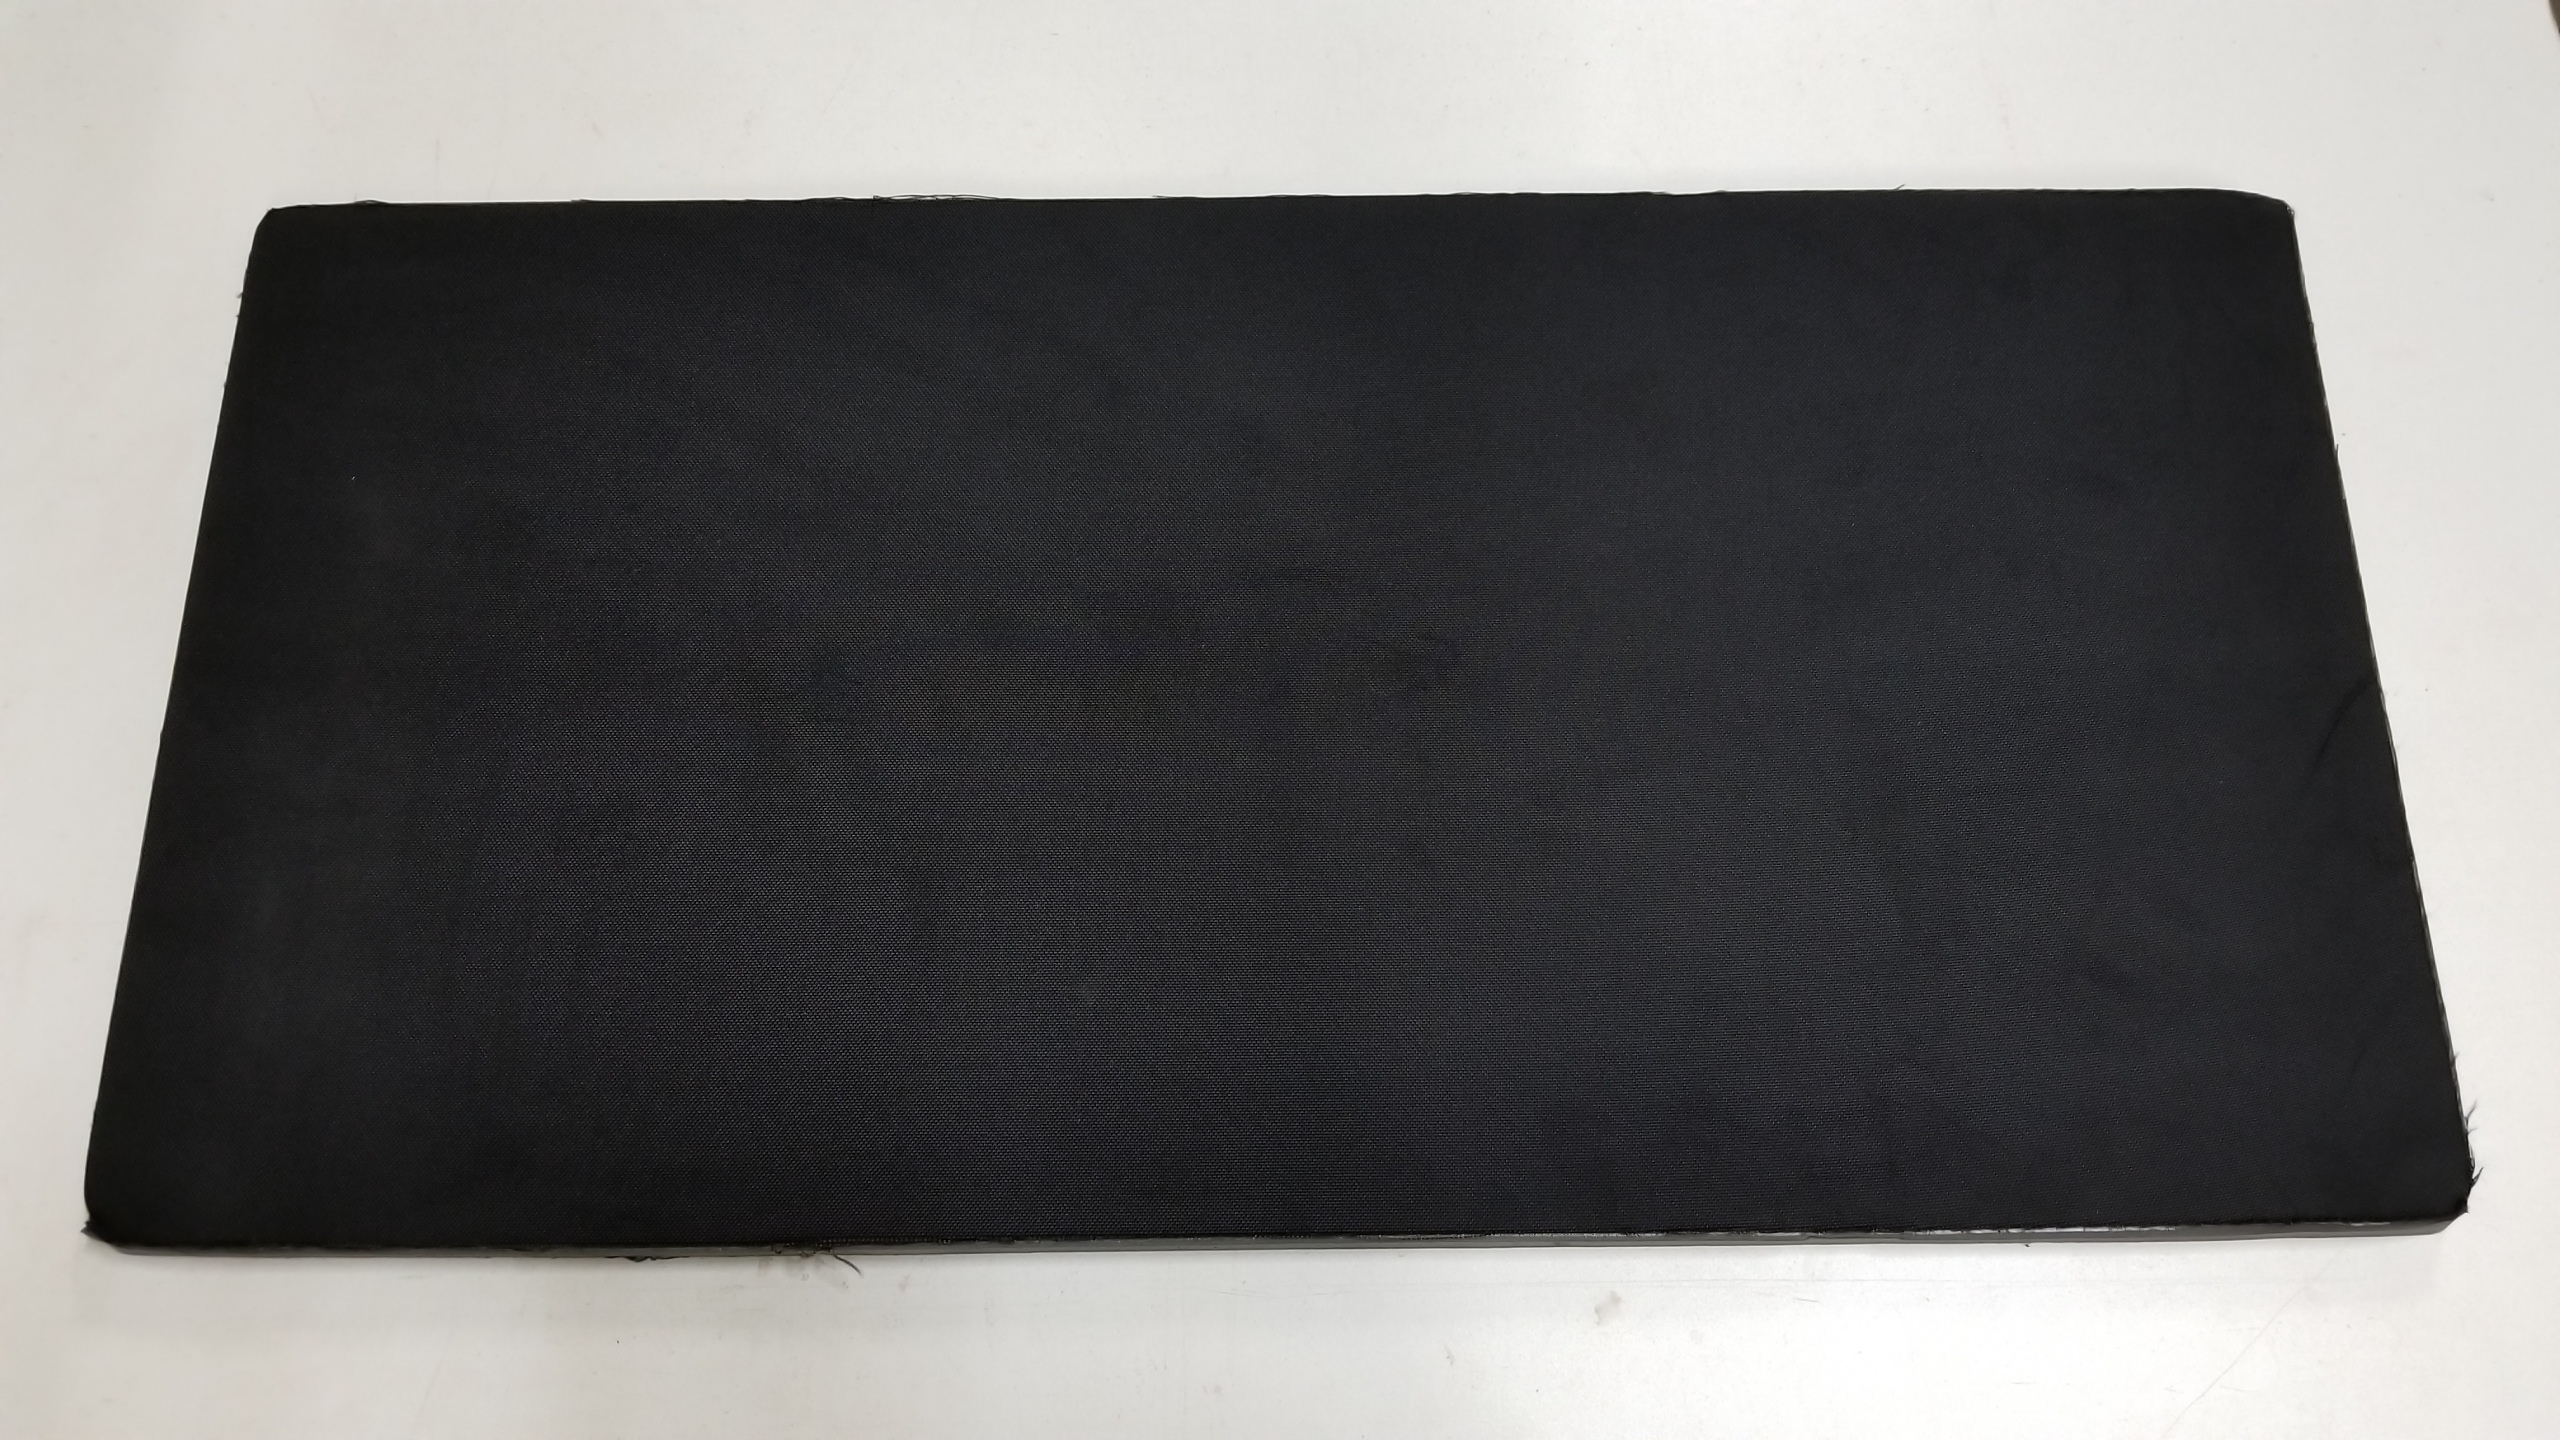 3x3 Booth Anti Vibration Floor Mat Set With Soundproofing